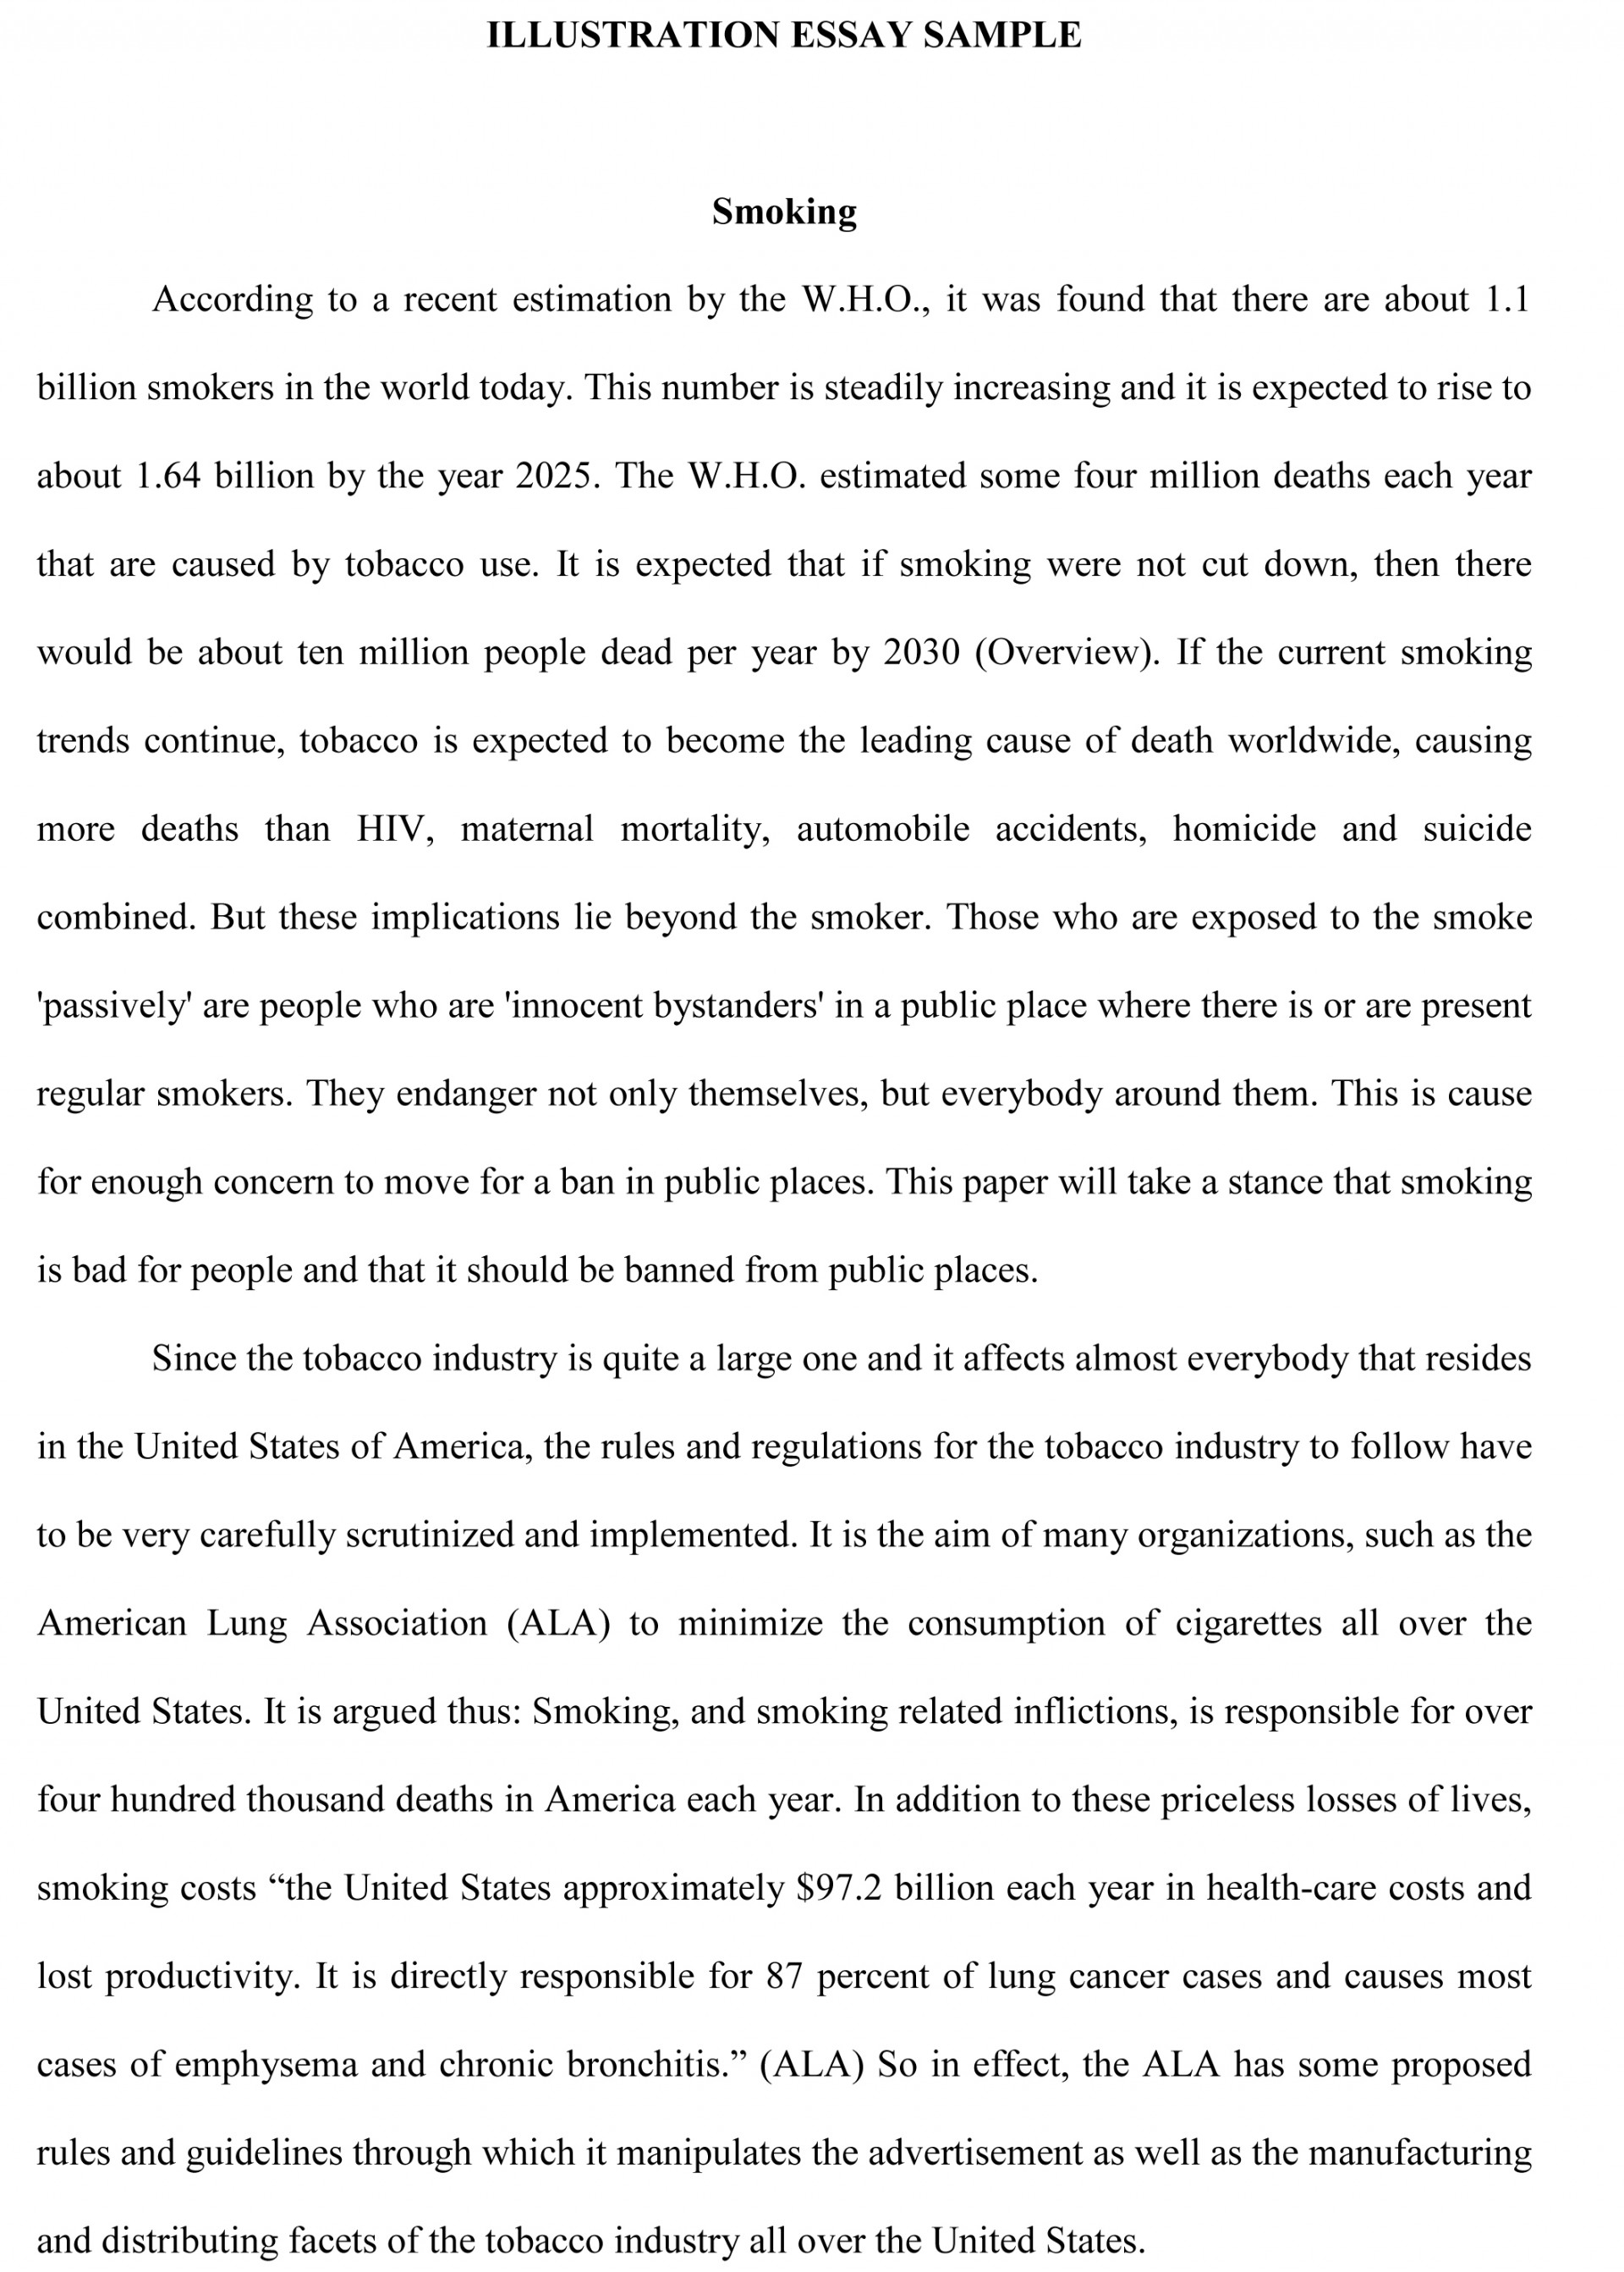 007 Essay Example Illustration Sample Act Fearsome Examples Good Score To Use 1920